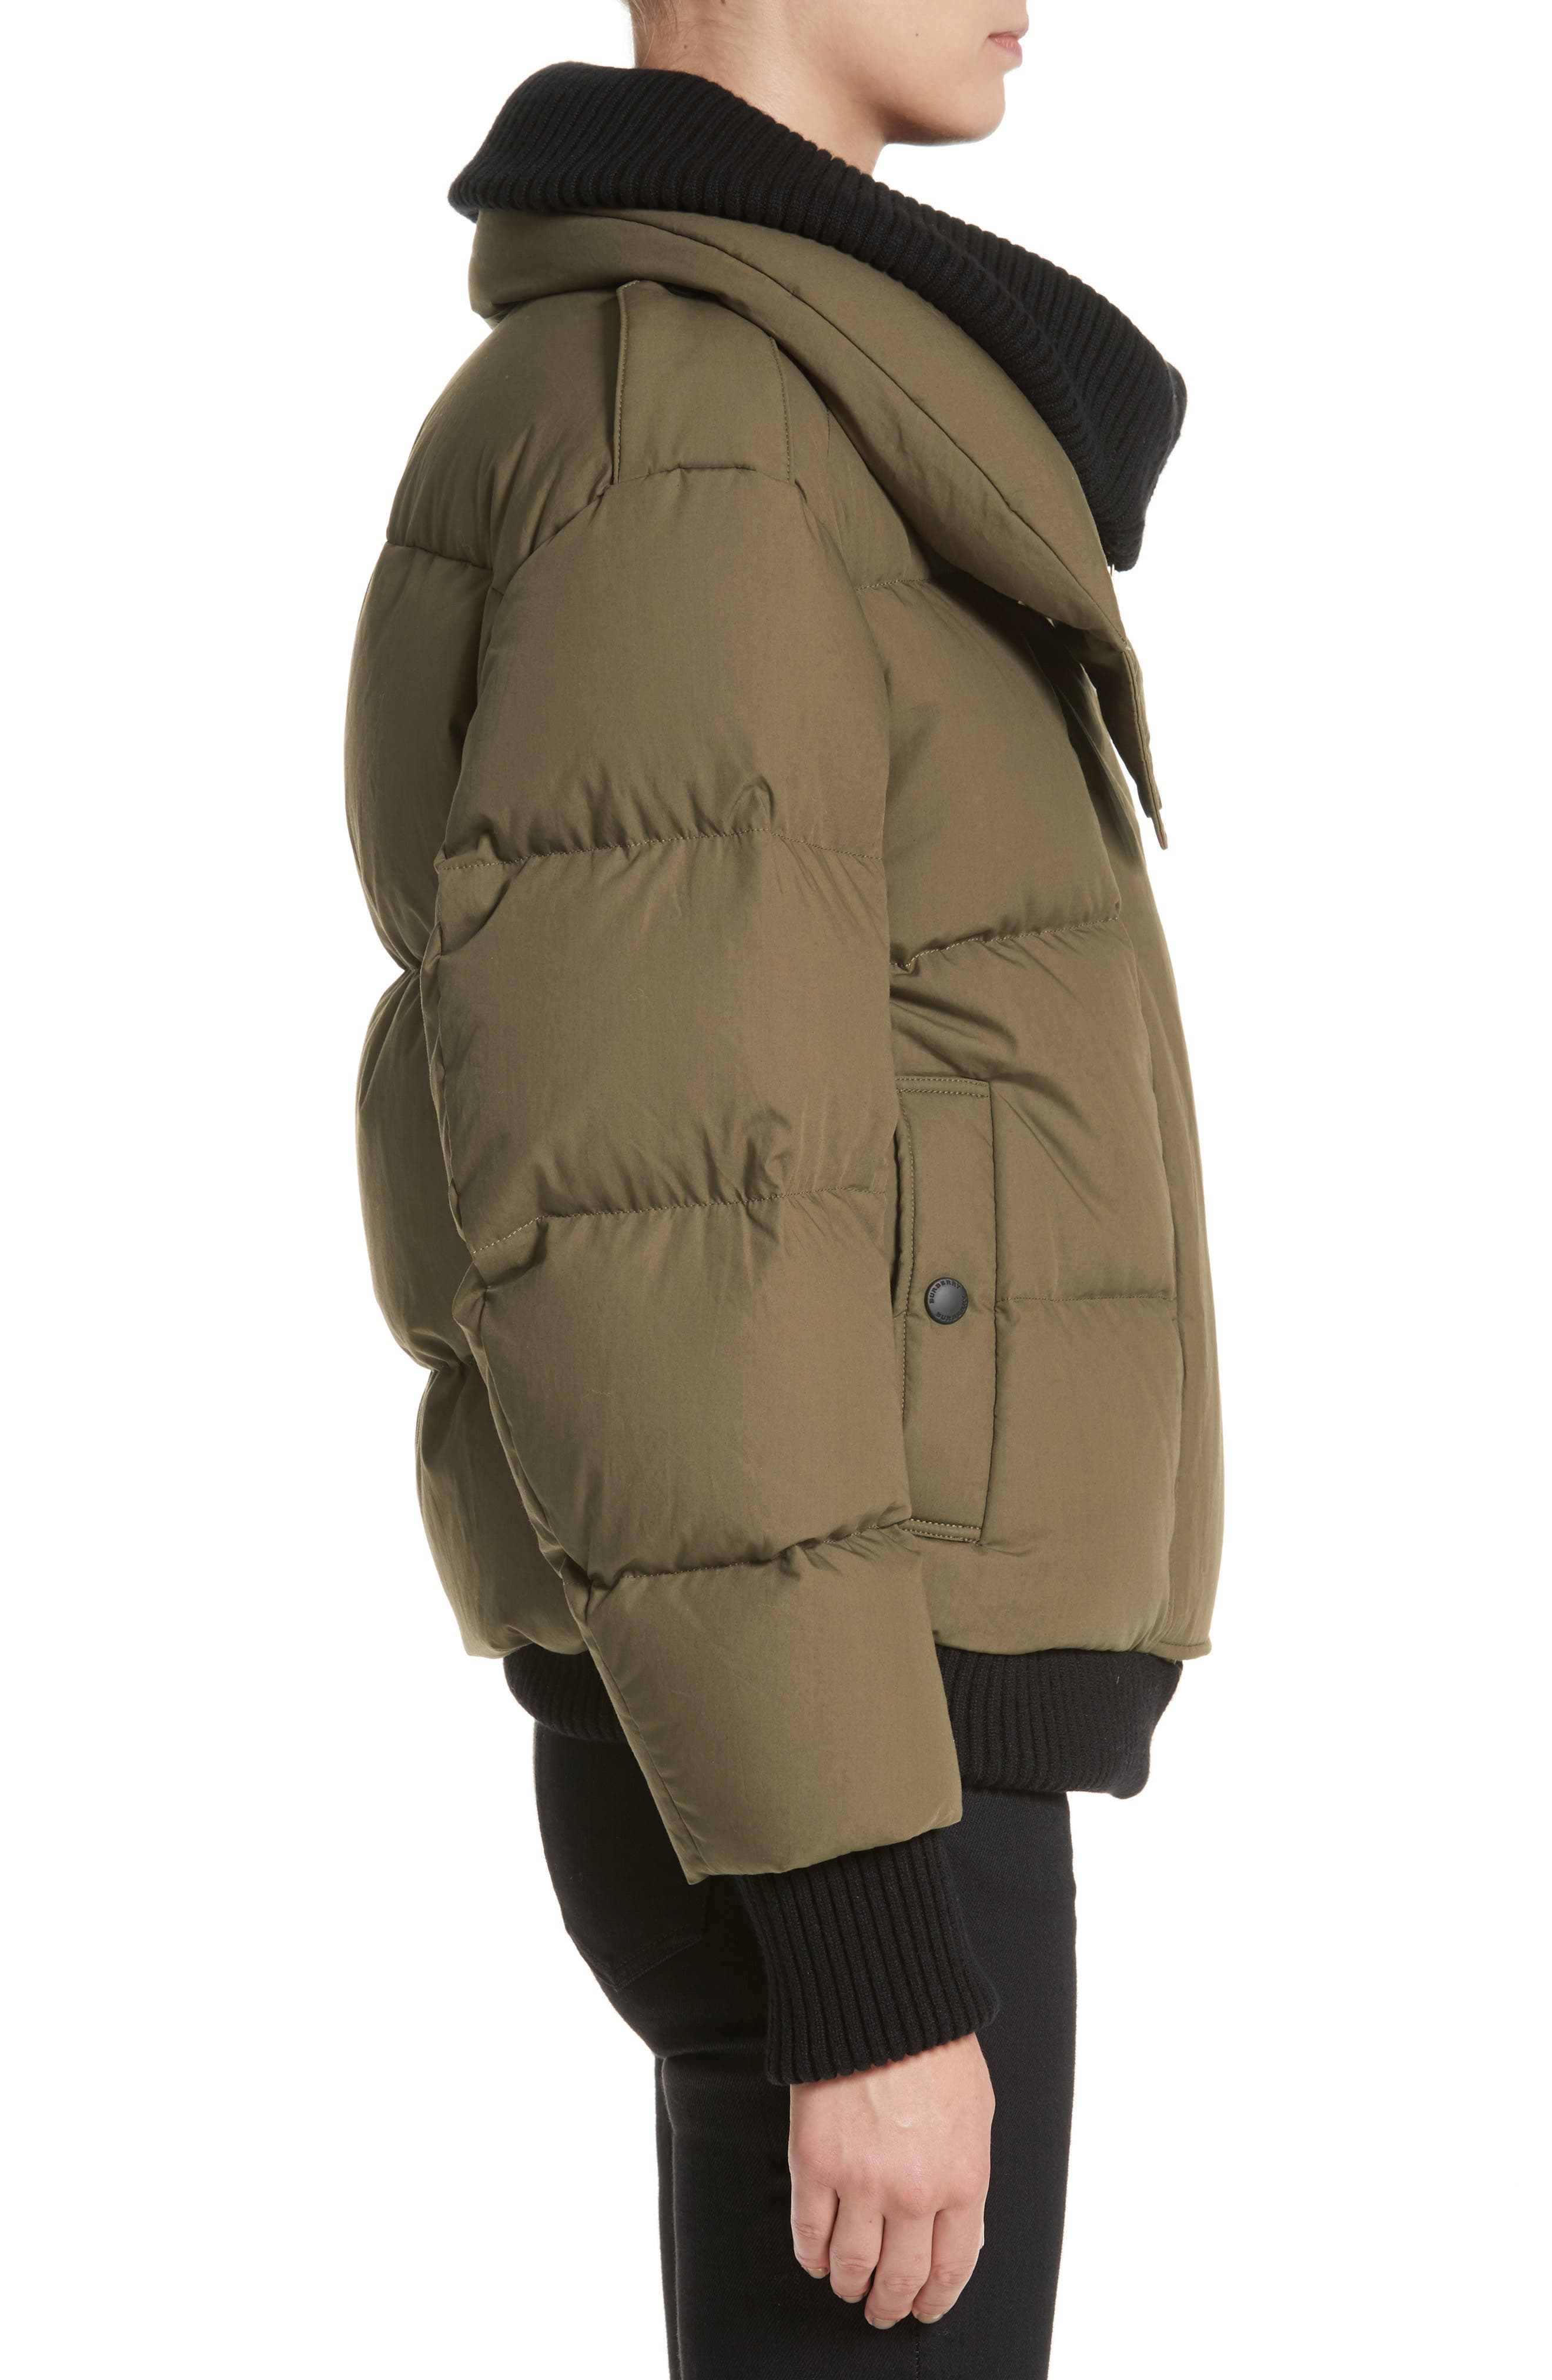 Greenlawkn Puffer Jacket,                             Alternate thumbnail 3, color,                             364